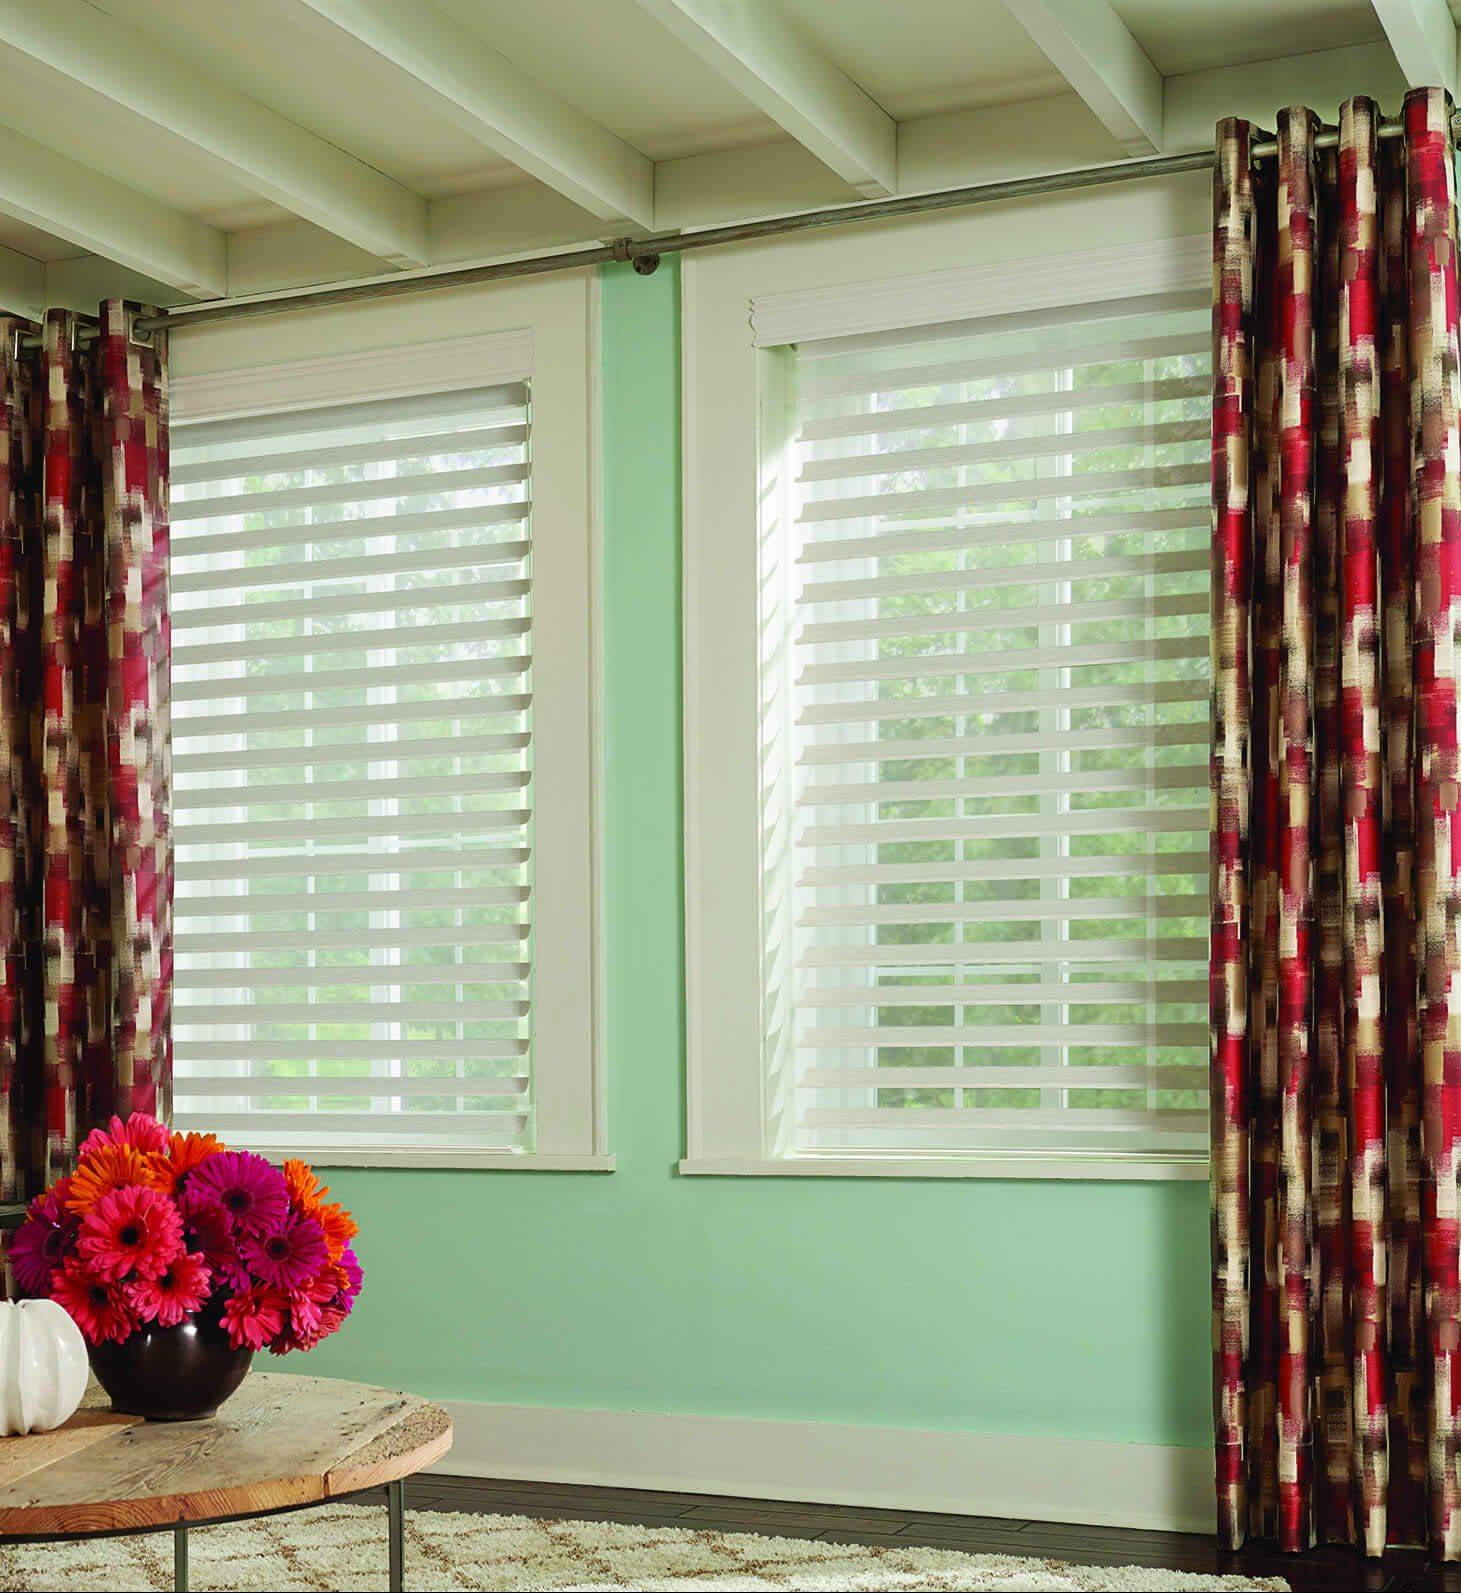 Order Office Blinds Today